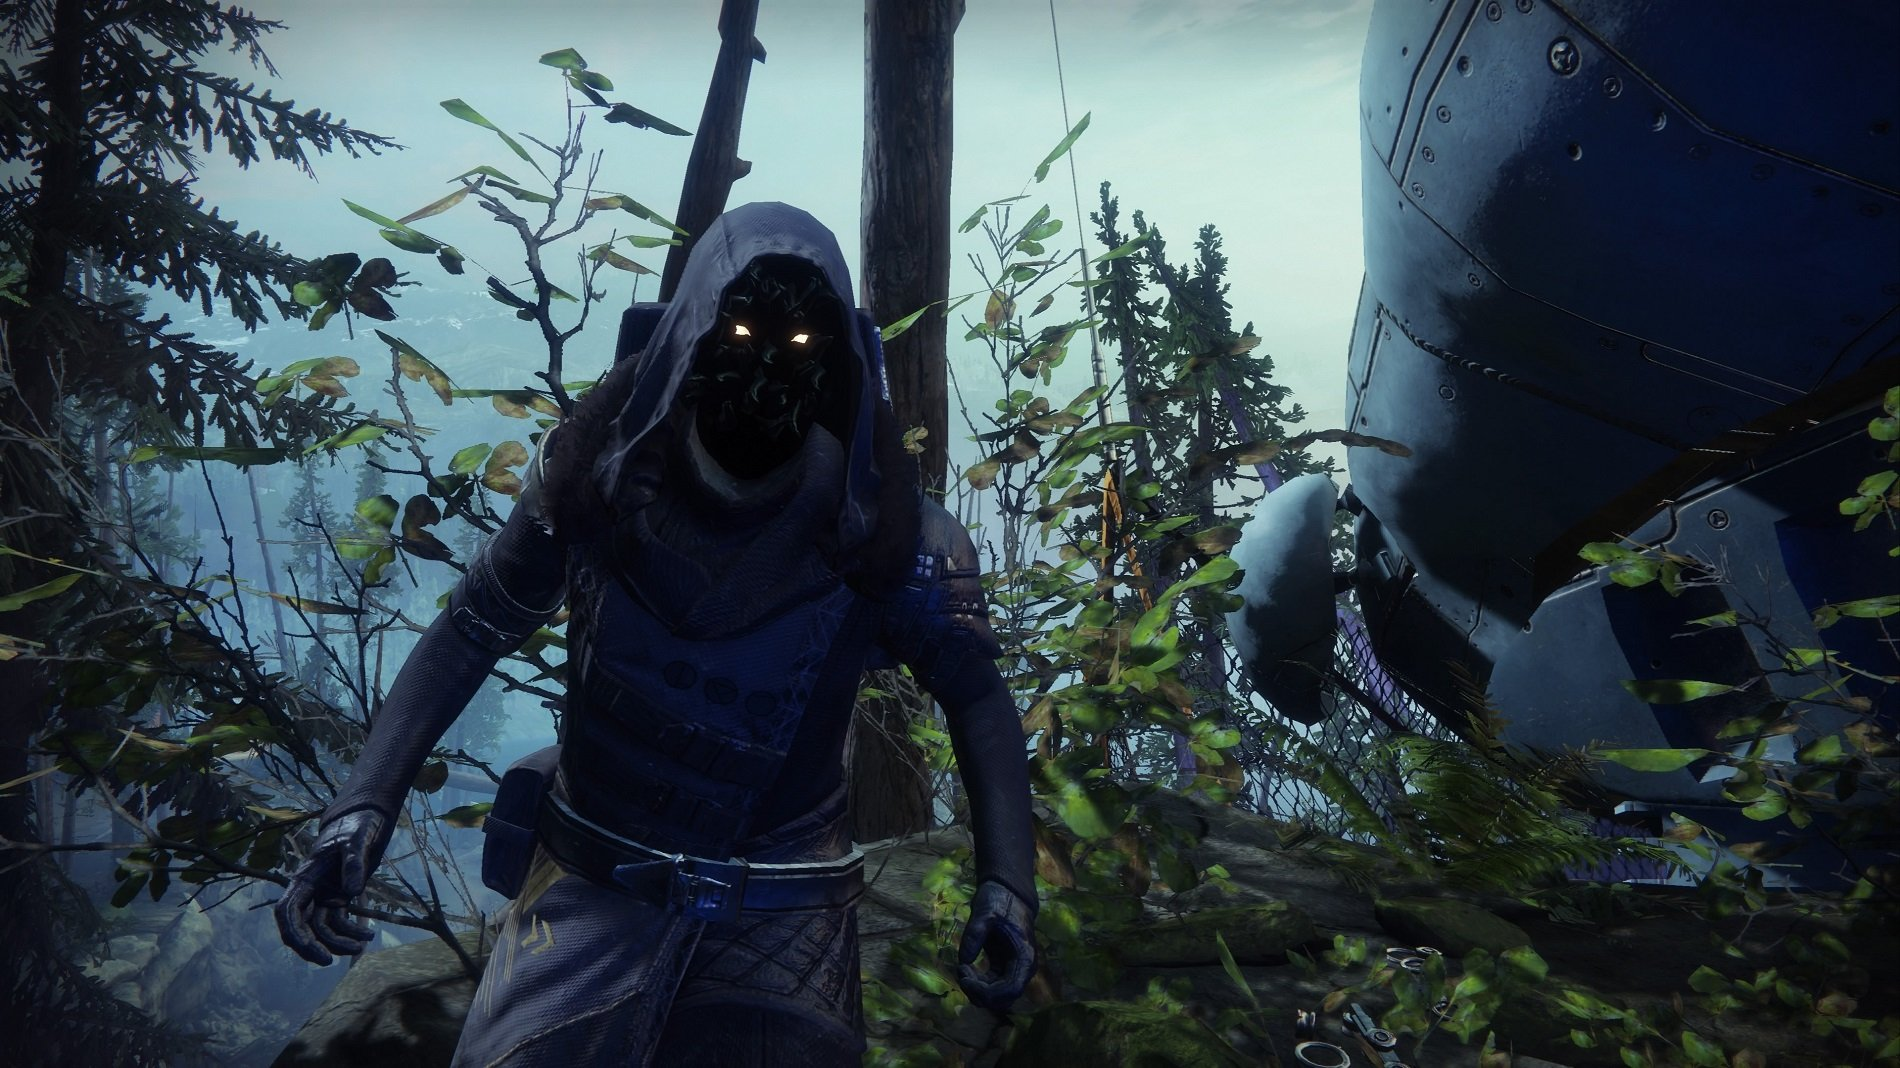 Where to find Xur in Destiny 2 - November 8, 2019